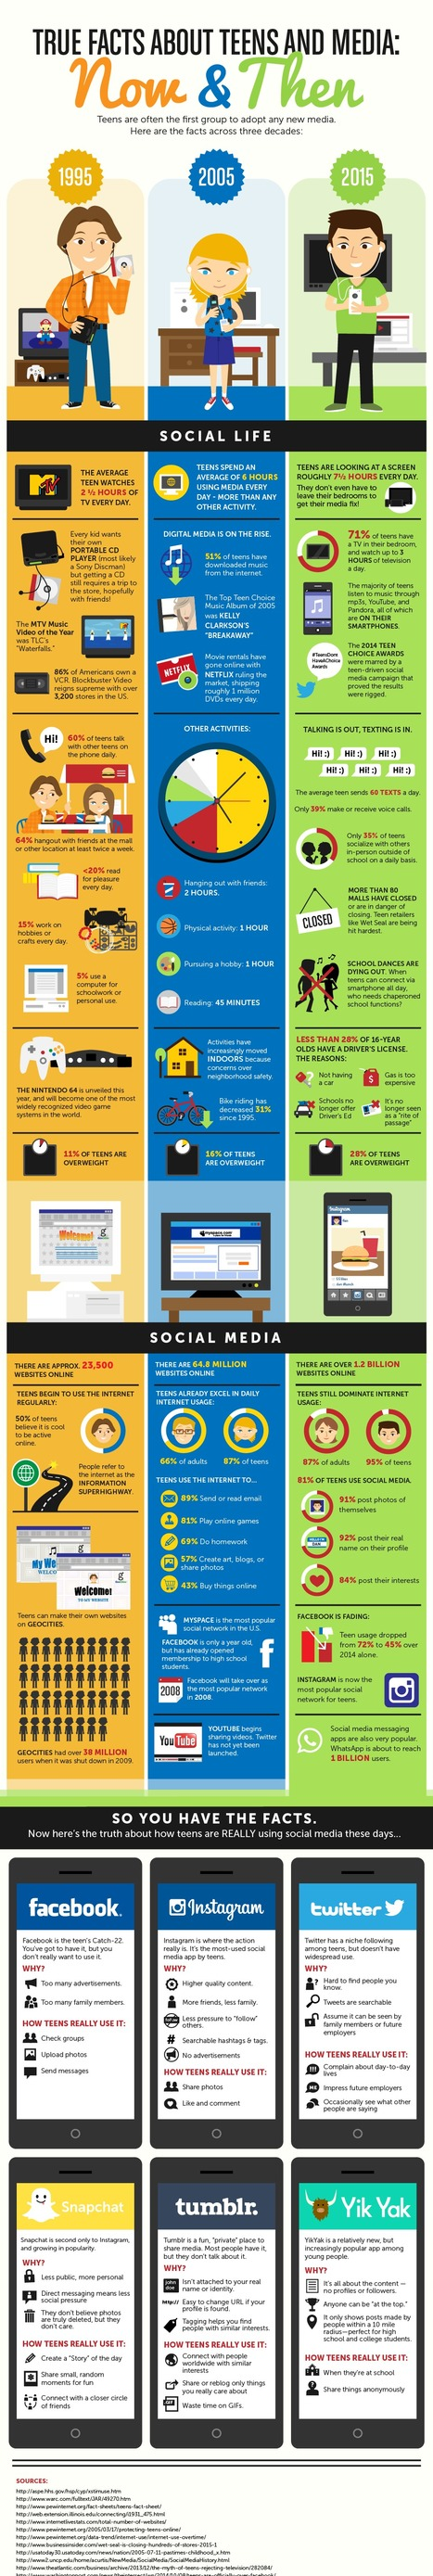 Teens and Media Over the Years Infographic  | Inspirational Infographics | Scoop.it